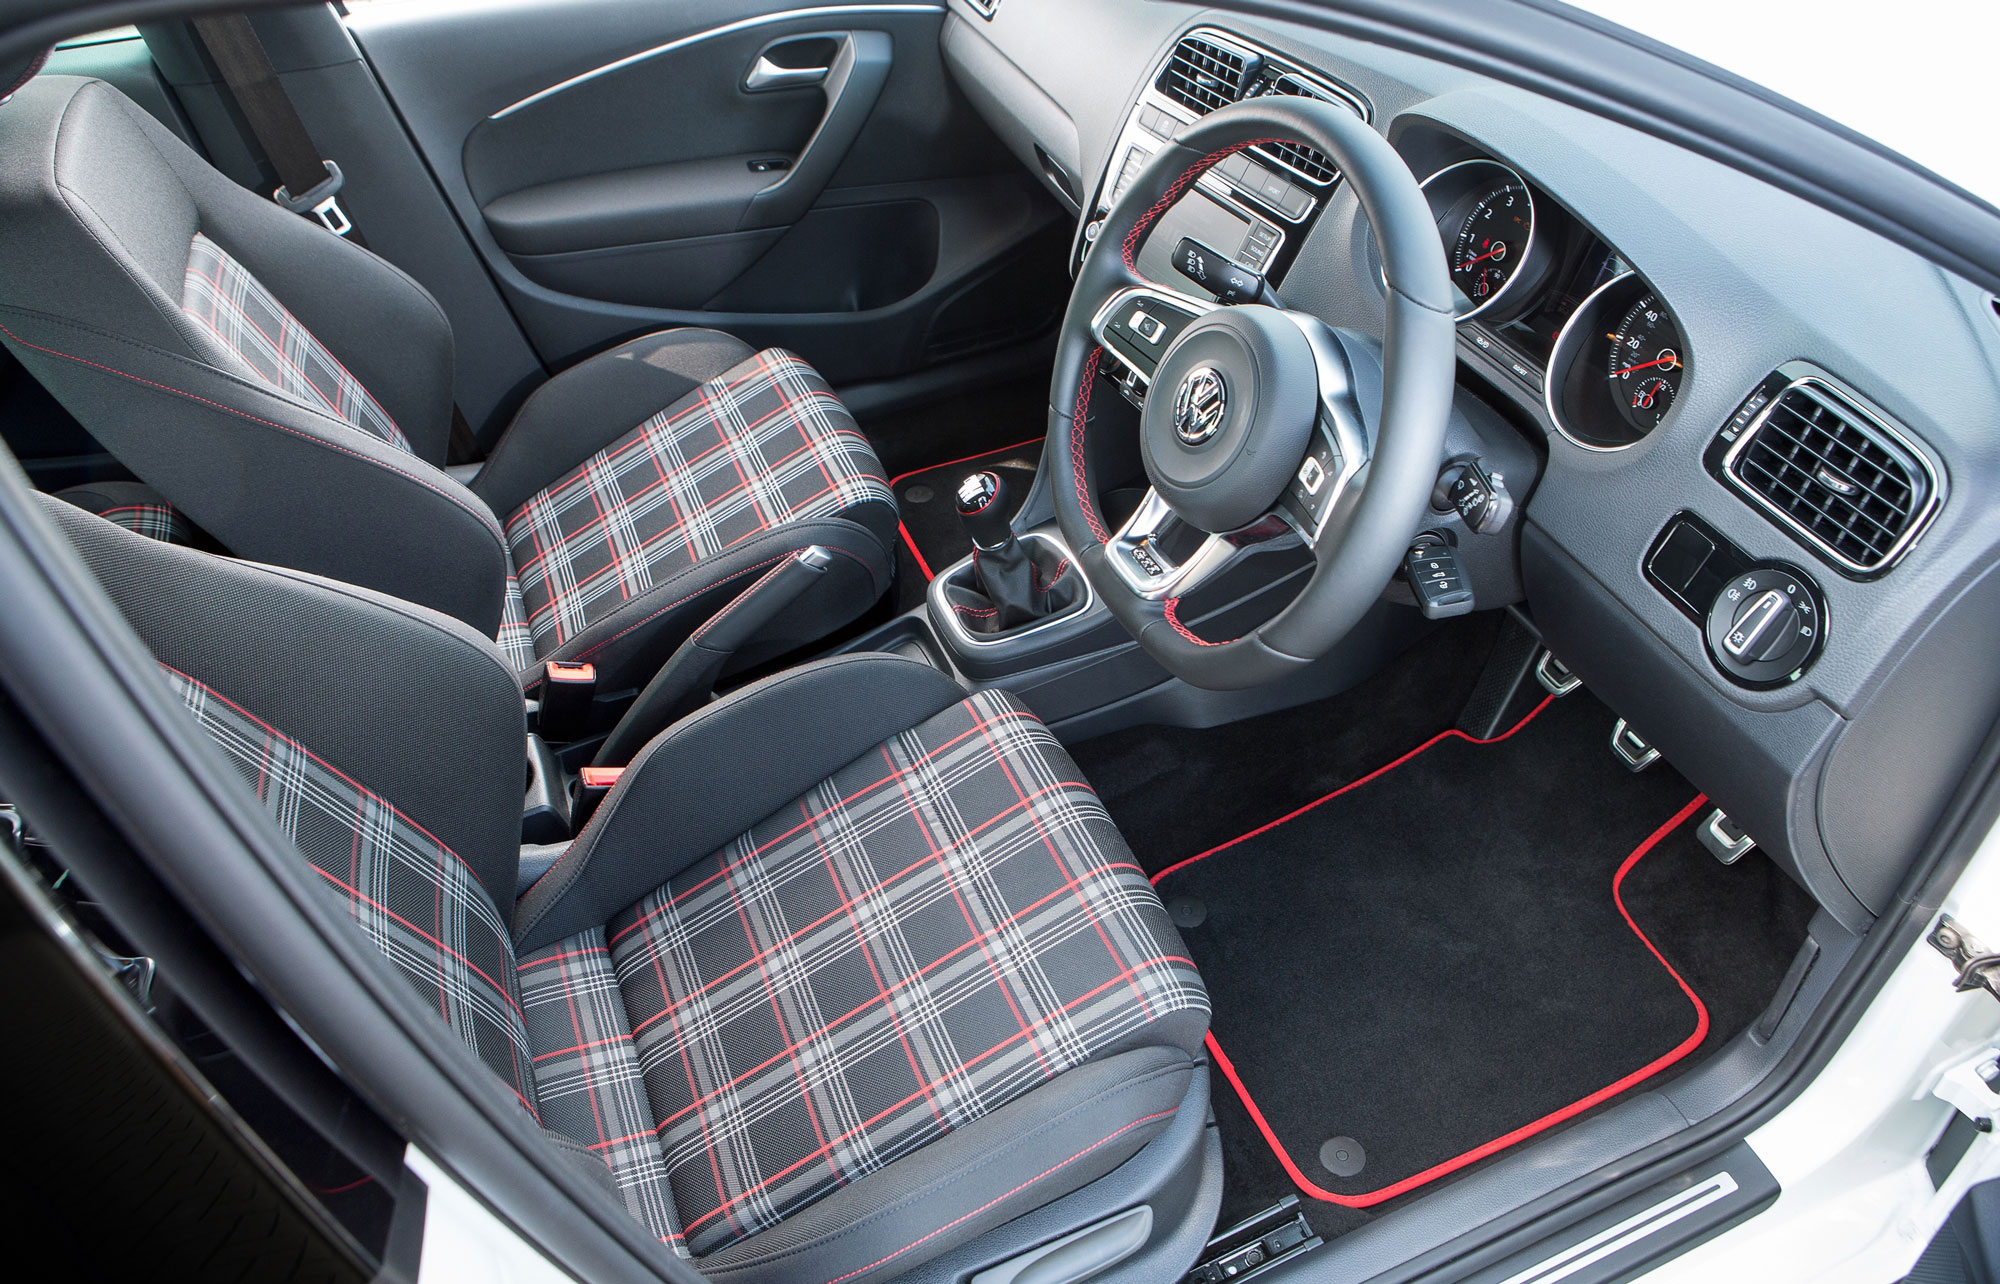 Vw Polo Gti Review Prices Specs And 0 60 Time Evo